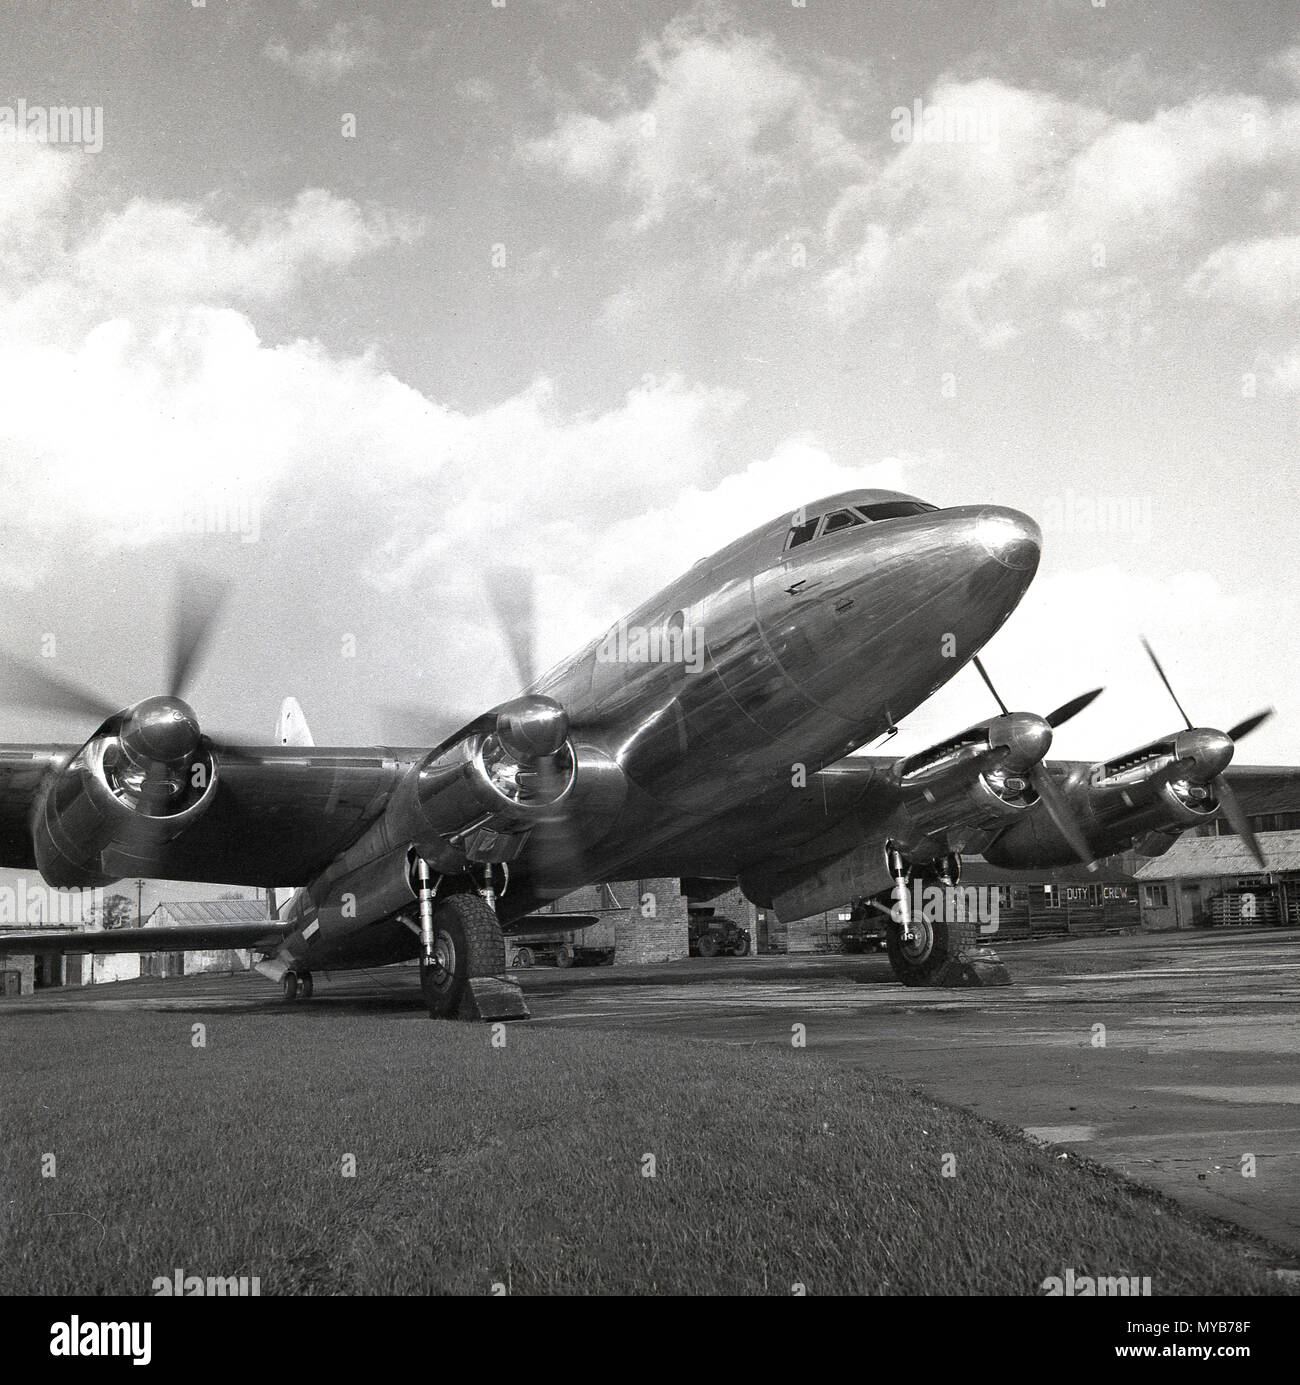 1940s, historical, the AVRO Tudor 1 aircraft parked on the runway at a small airport, England, UK. A. V Roe & Co, known as AVRO was the famous British designer and builder of the WW2 Lancaster and Lincoln planes. The Tudor's aircraft's development was supported by the British government's Ministry of Supply who believed the civil aviation industry was important to the nation. - Stock Image